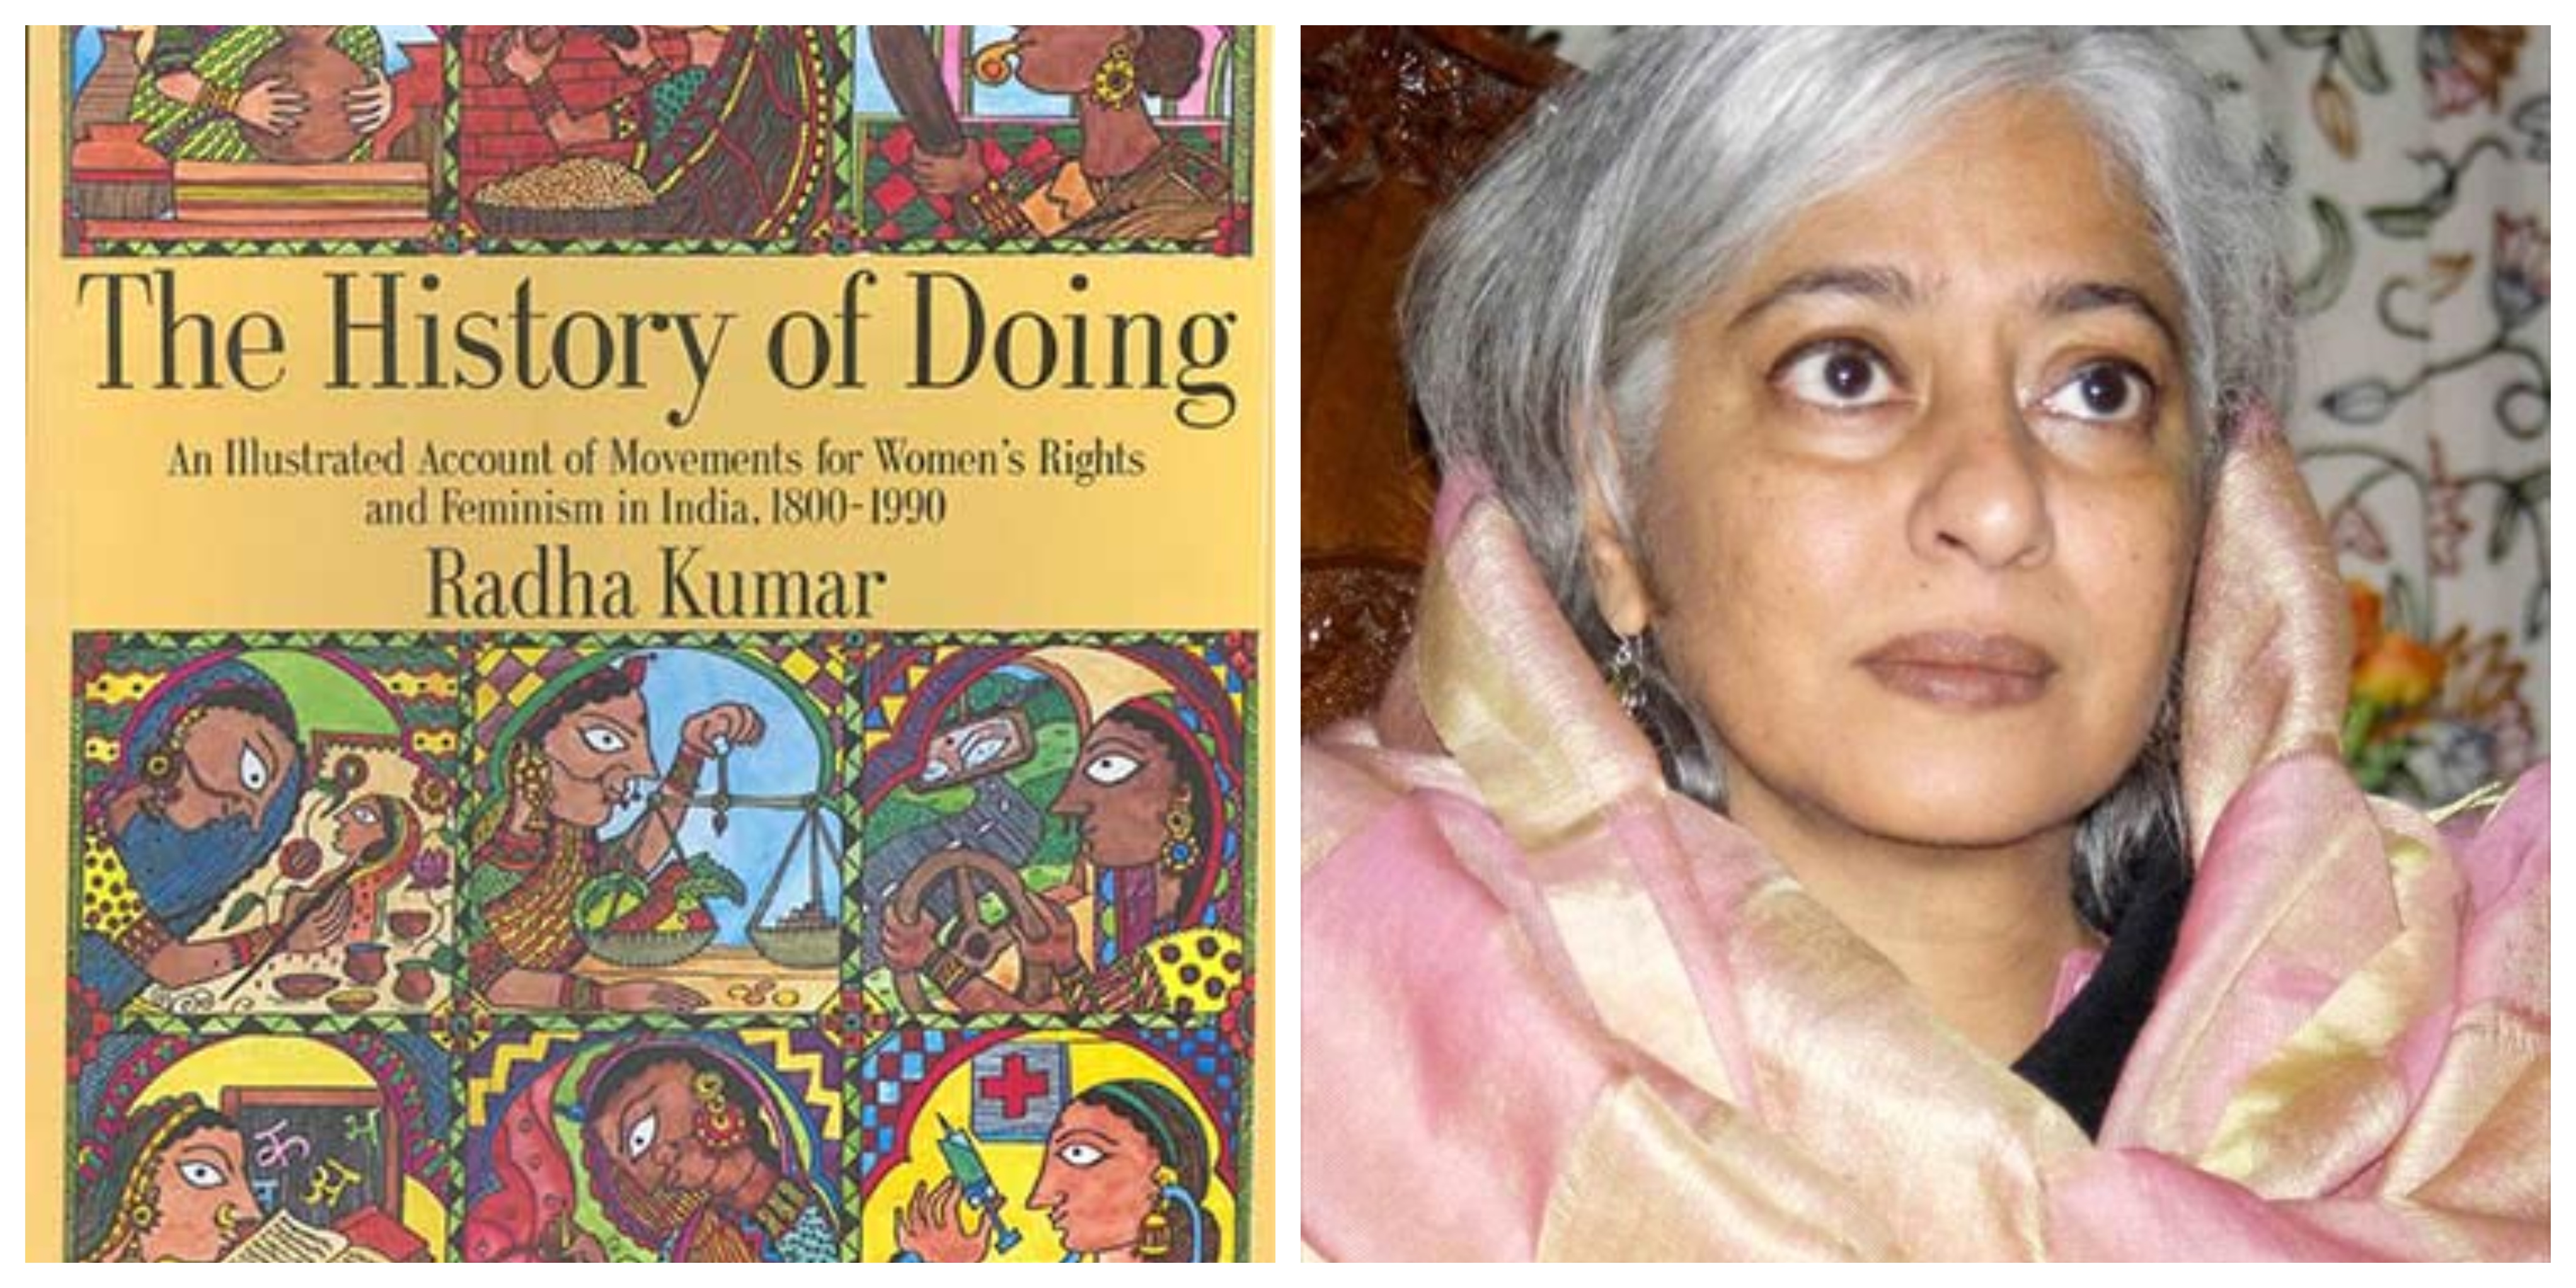 Book Excerpt: The History Of Doing By Radha Kumar | Feminism In India